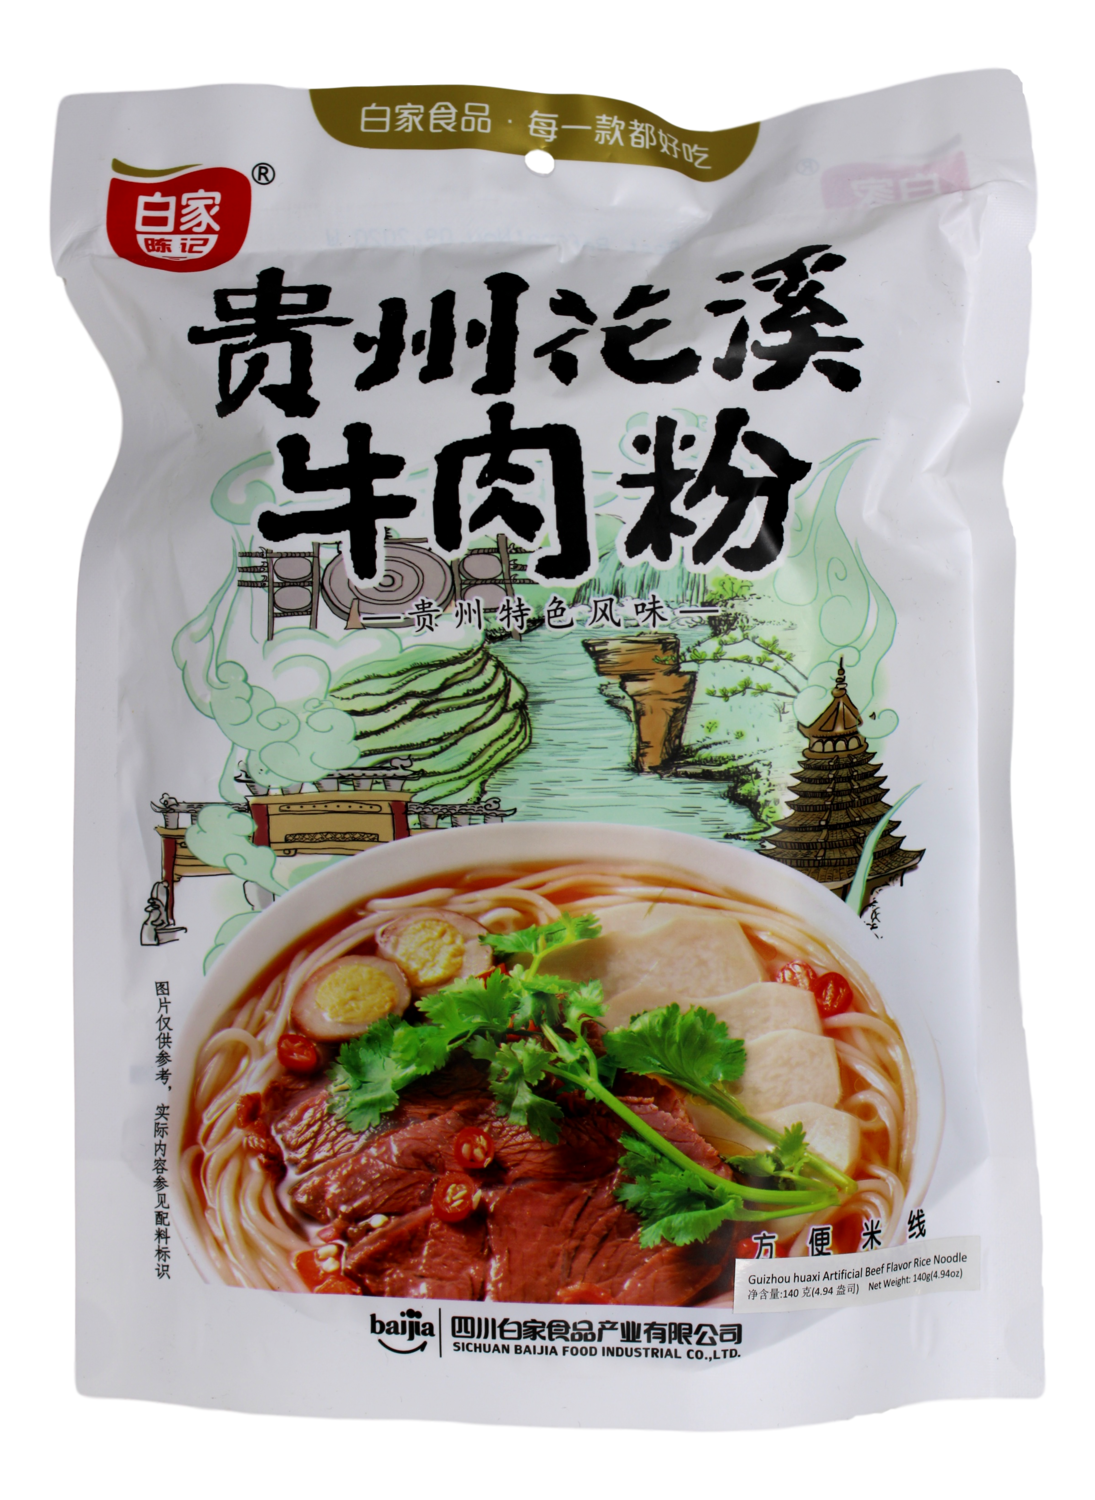 GUIZHOU HUAXI ARTIFICIAL BEEF FLAV. INSTANT RICE NOODLE 白家 贵州花溪牛肉粉